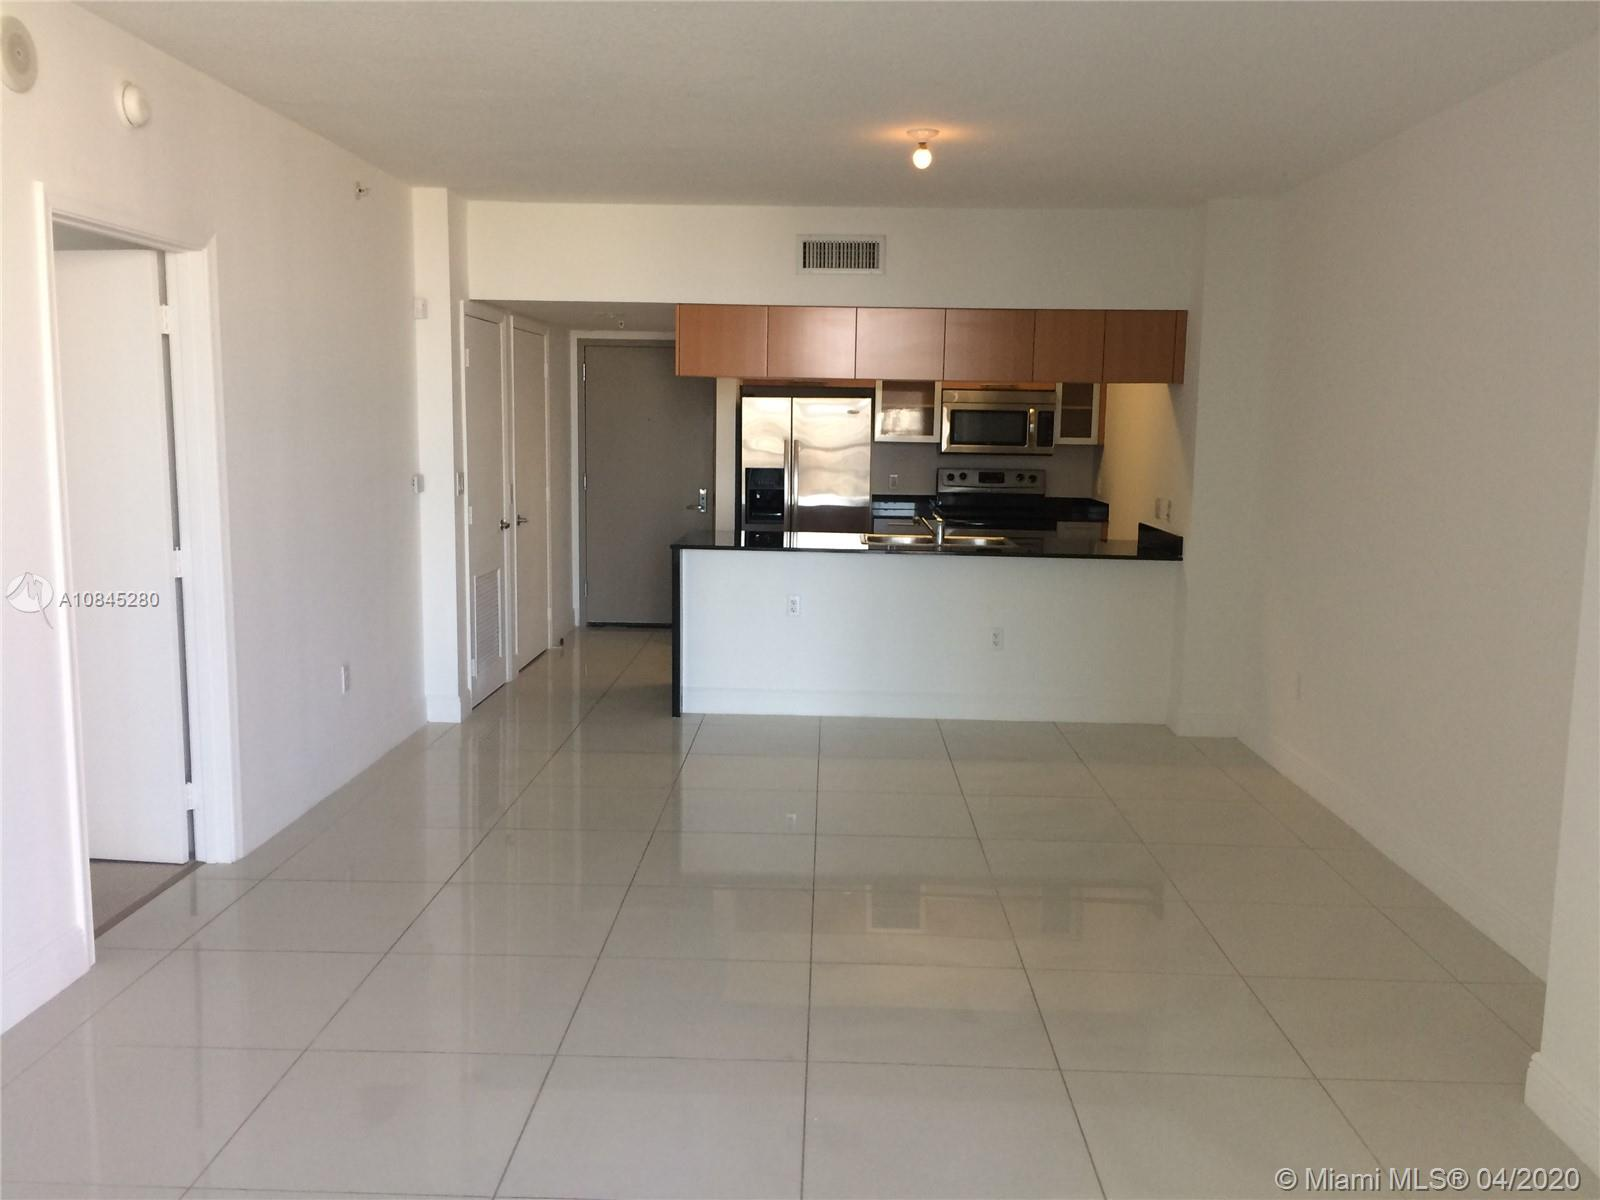 1750 N Bayshore Dr # 1411, Miami, Florida 33132, 1 Bedroom Bedrooms, ,1 BathroomBathrooms,Residential,For Sale,1750 N Bayshore Dr # 1411,A10845280